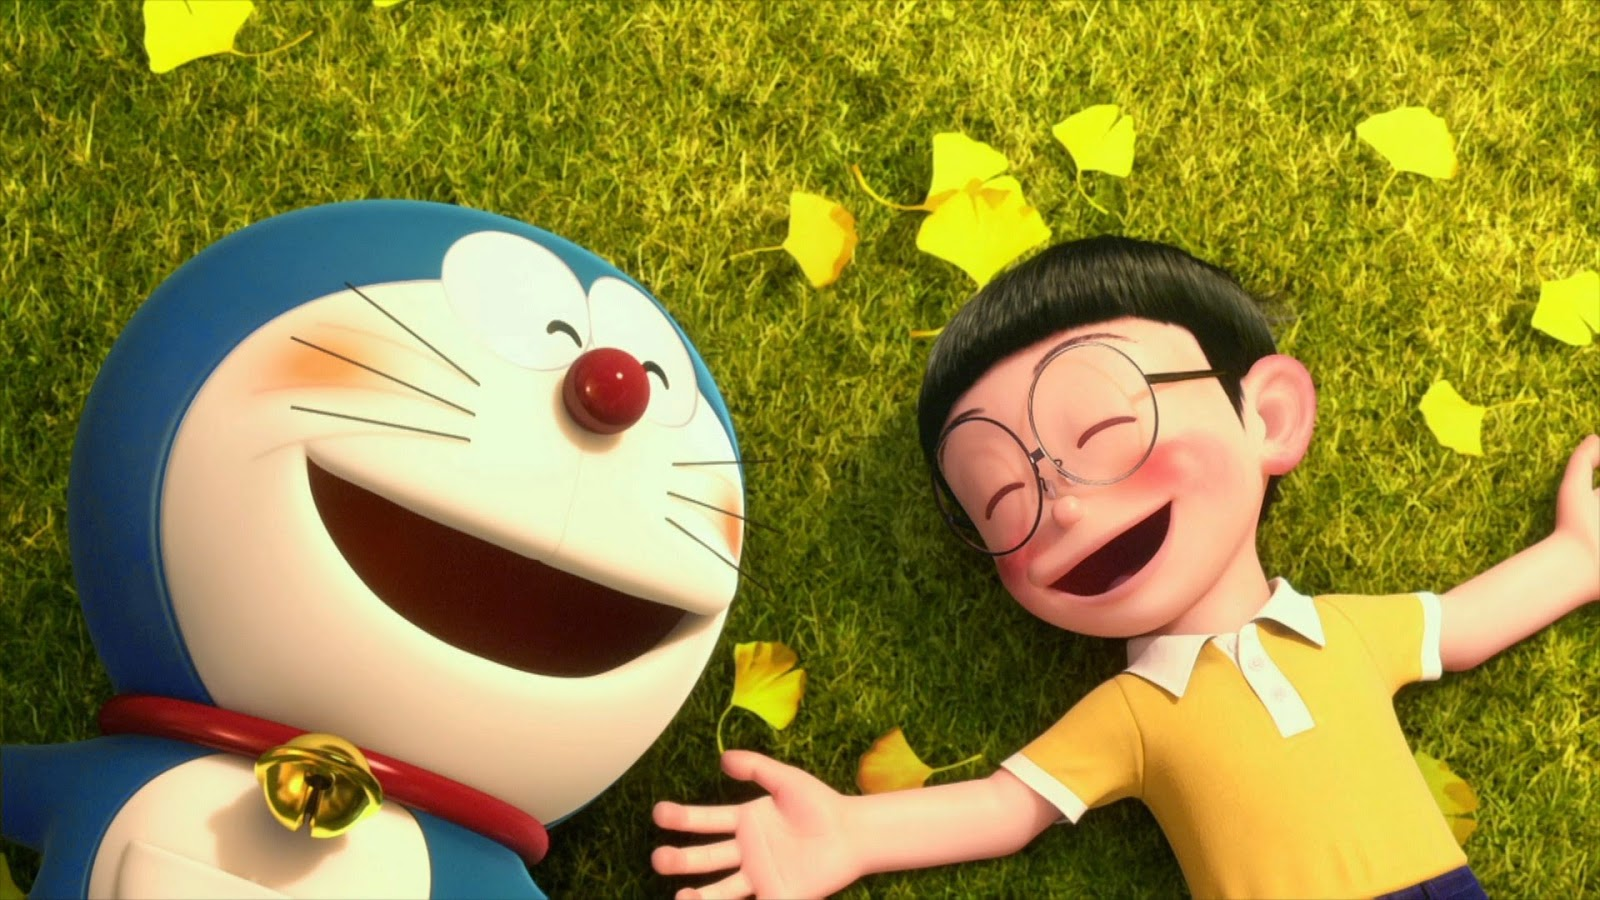 New Stand By Me Doraemon Trailers Features Time Travel & Drama